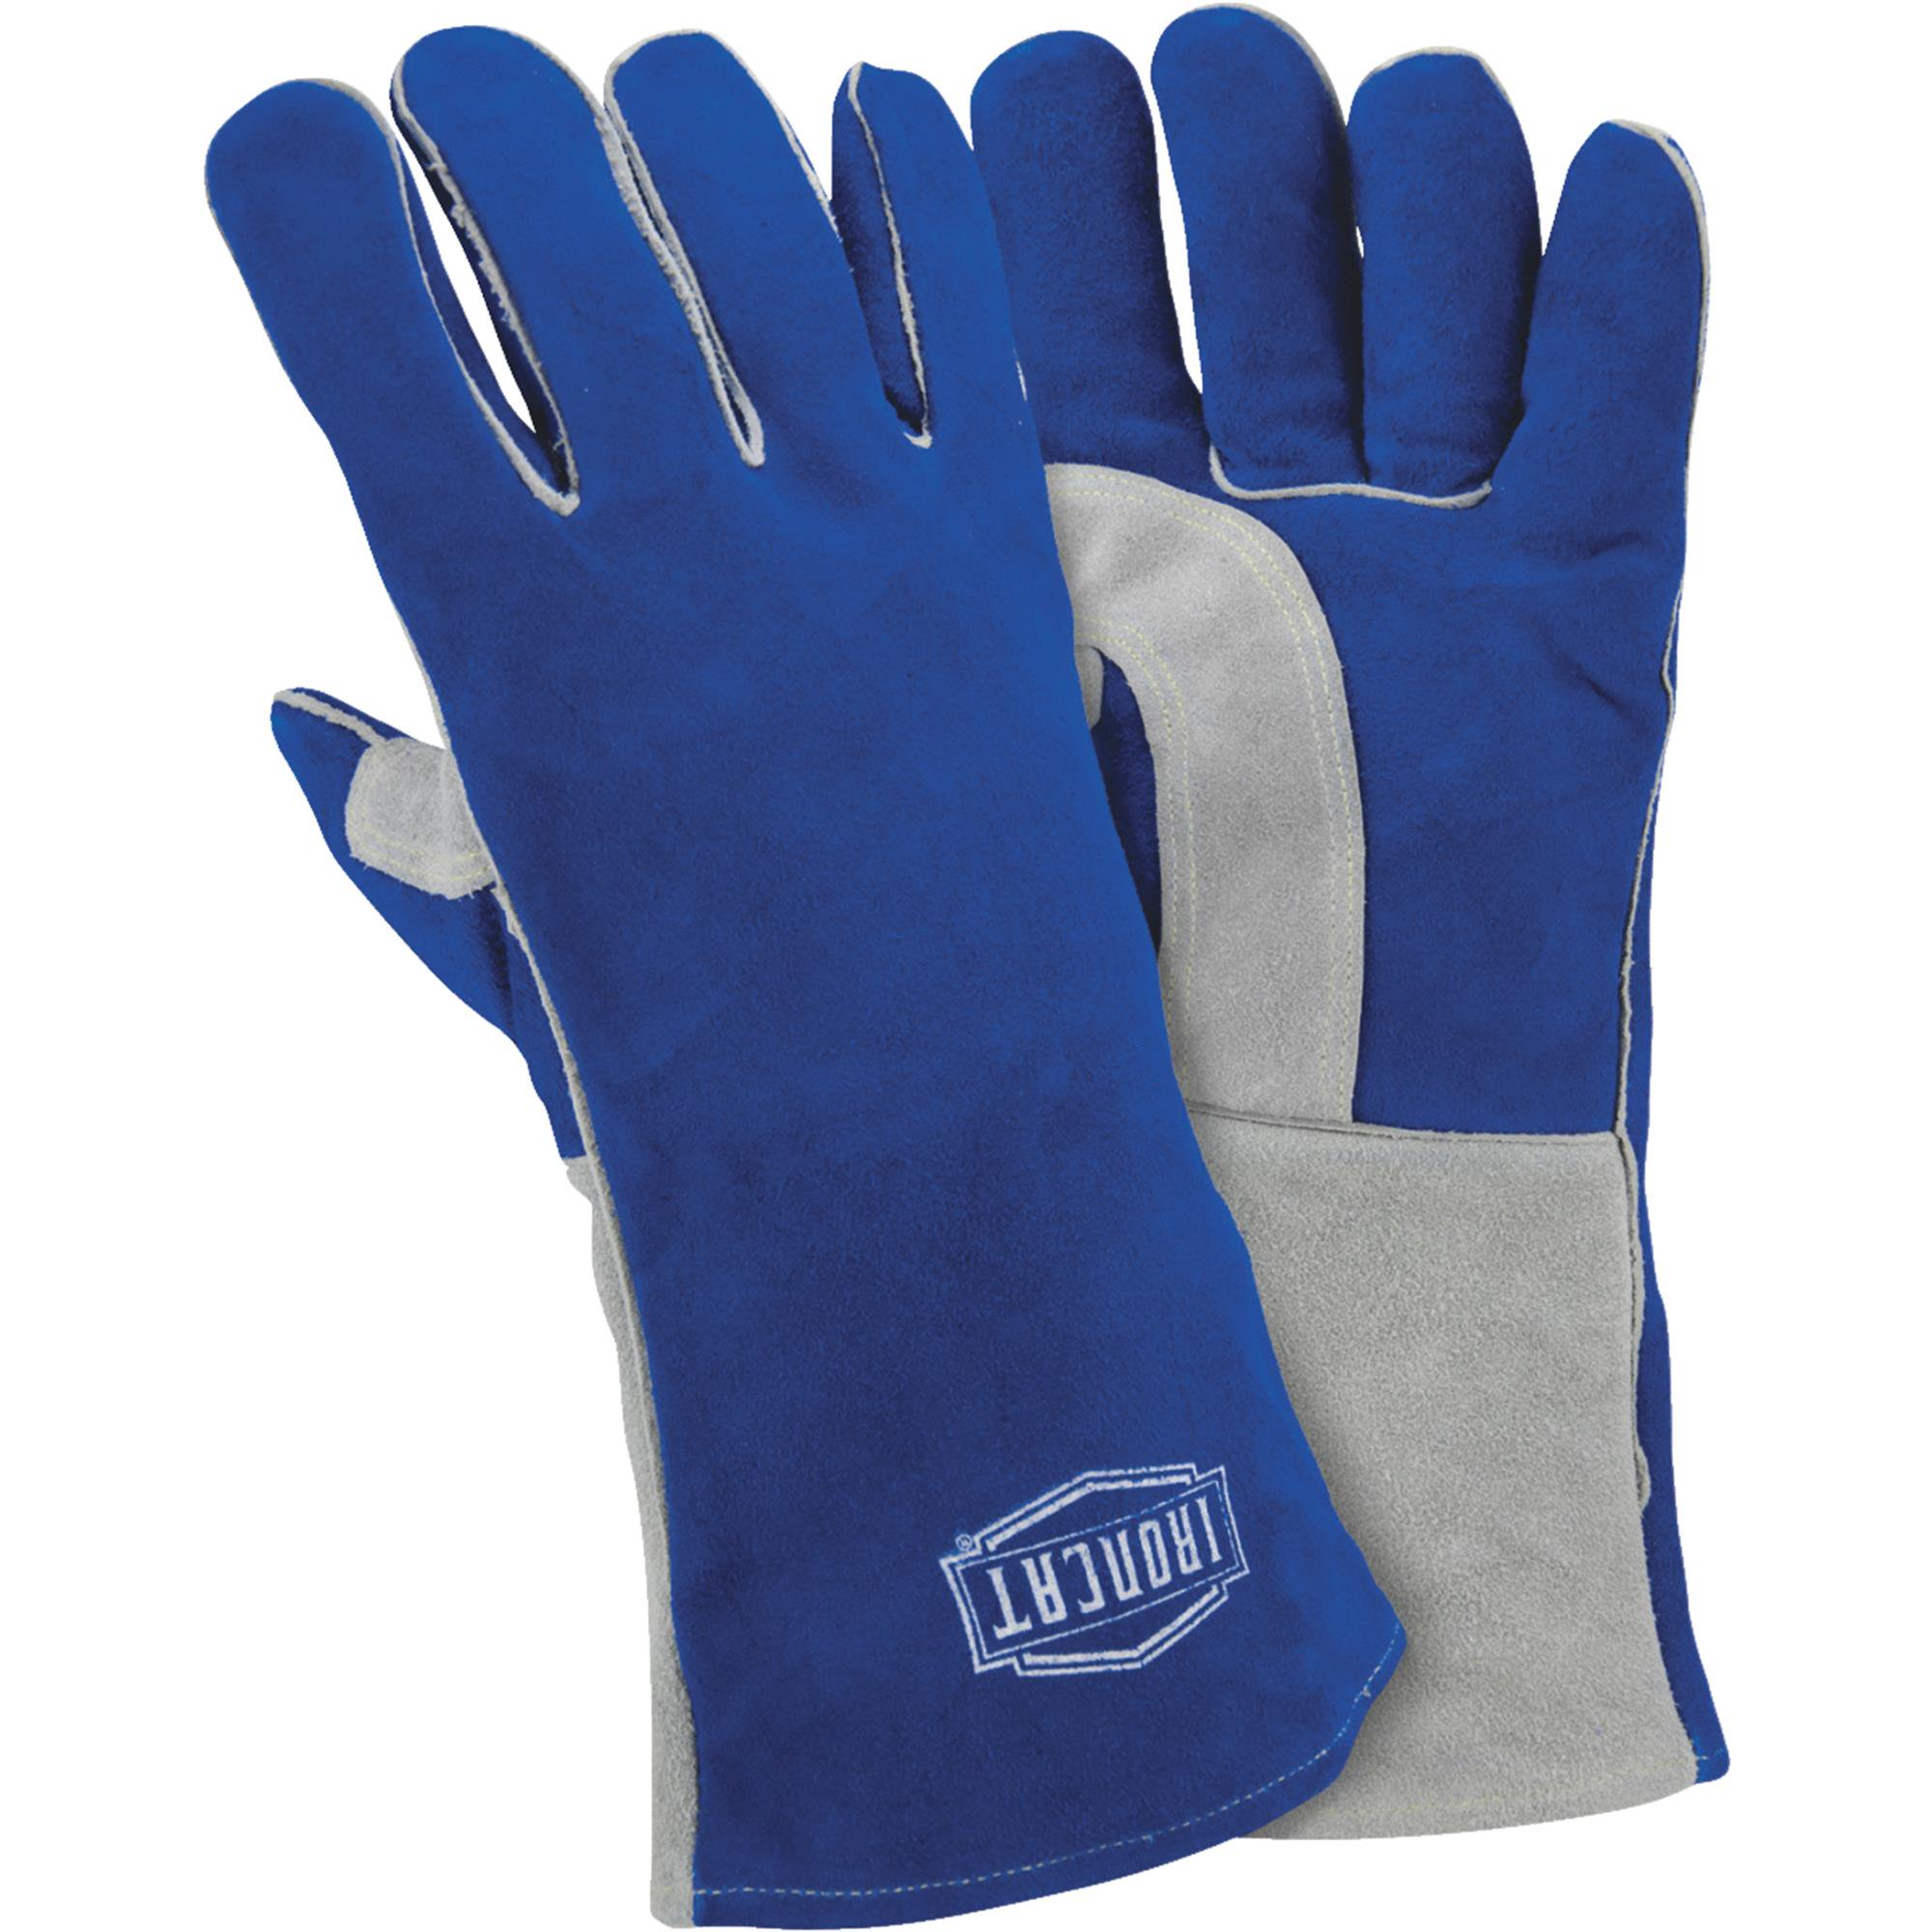 West-Chester Xl Ins Welding Glove 9051/XL